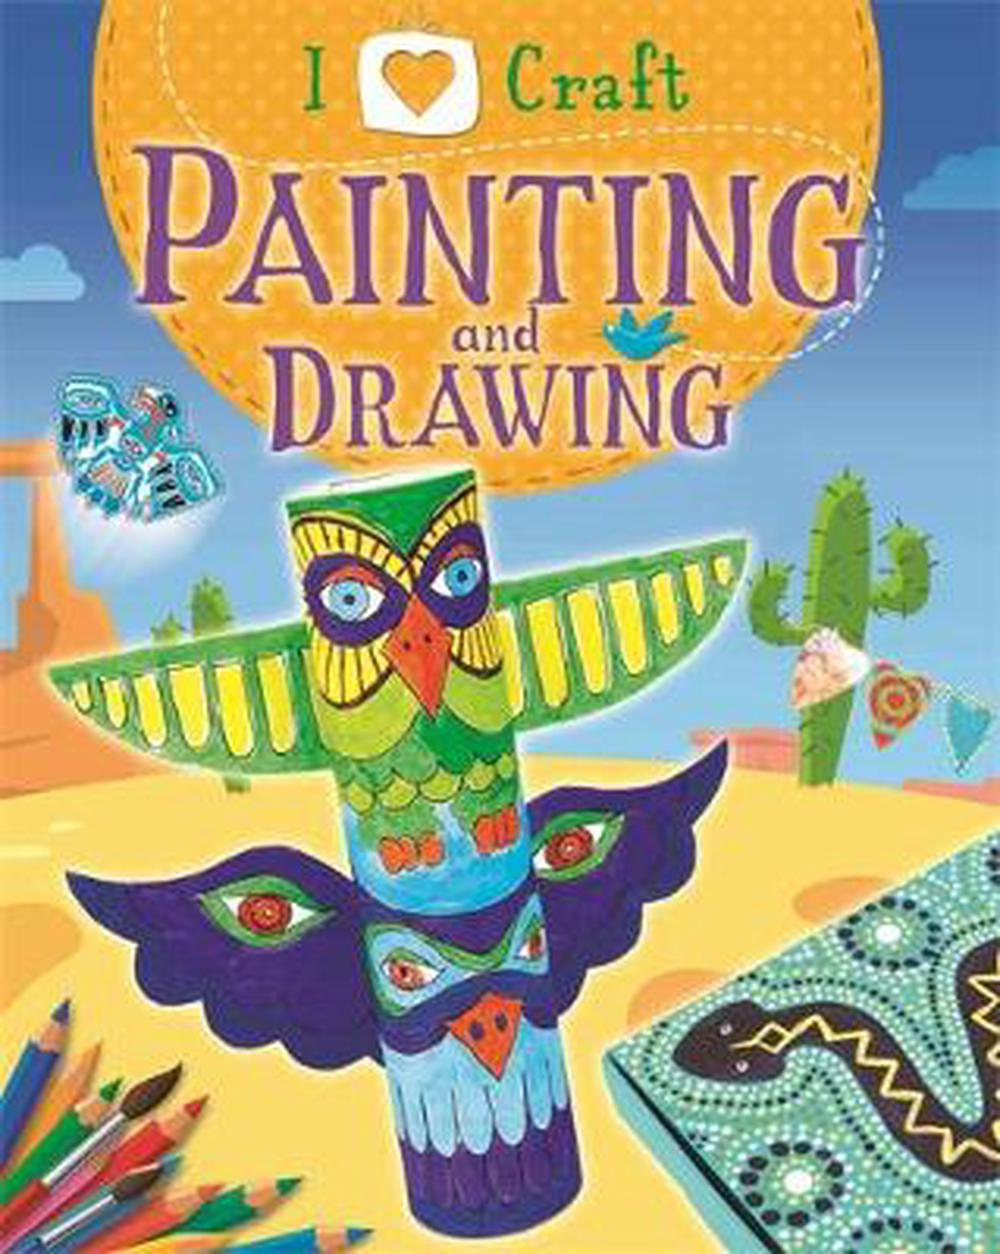 I Love Craft: Painting and Drawing